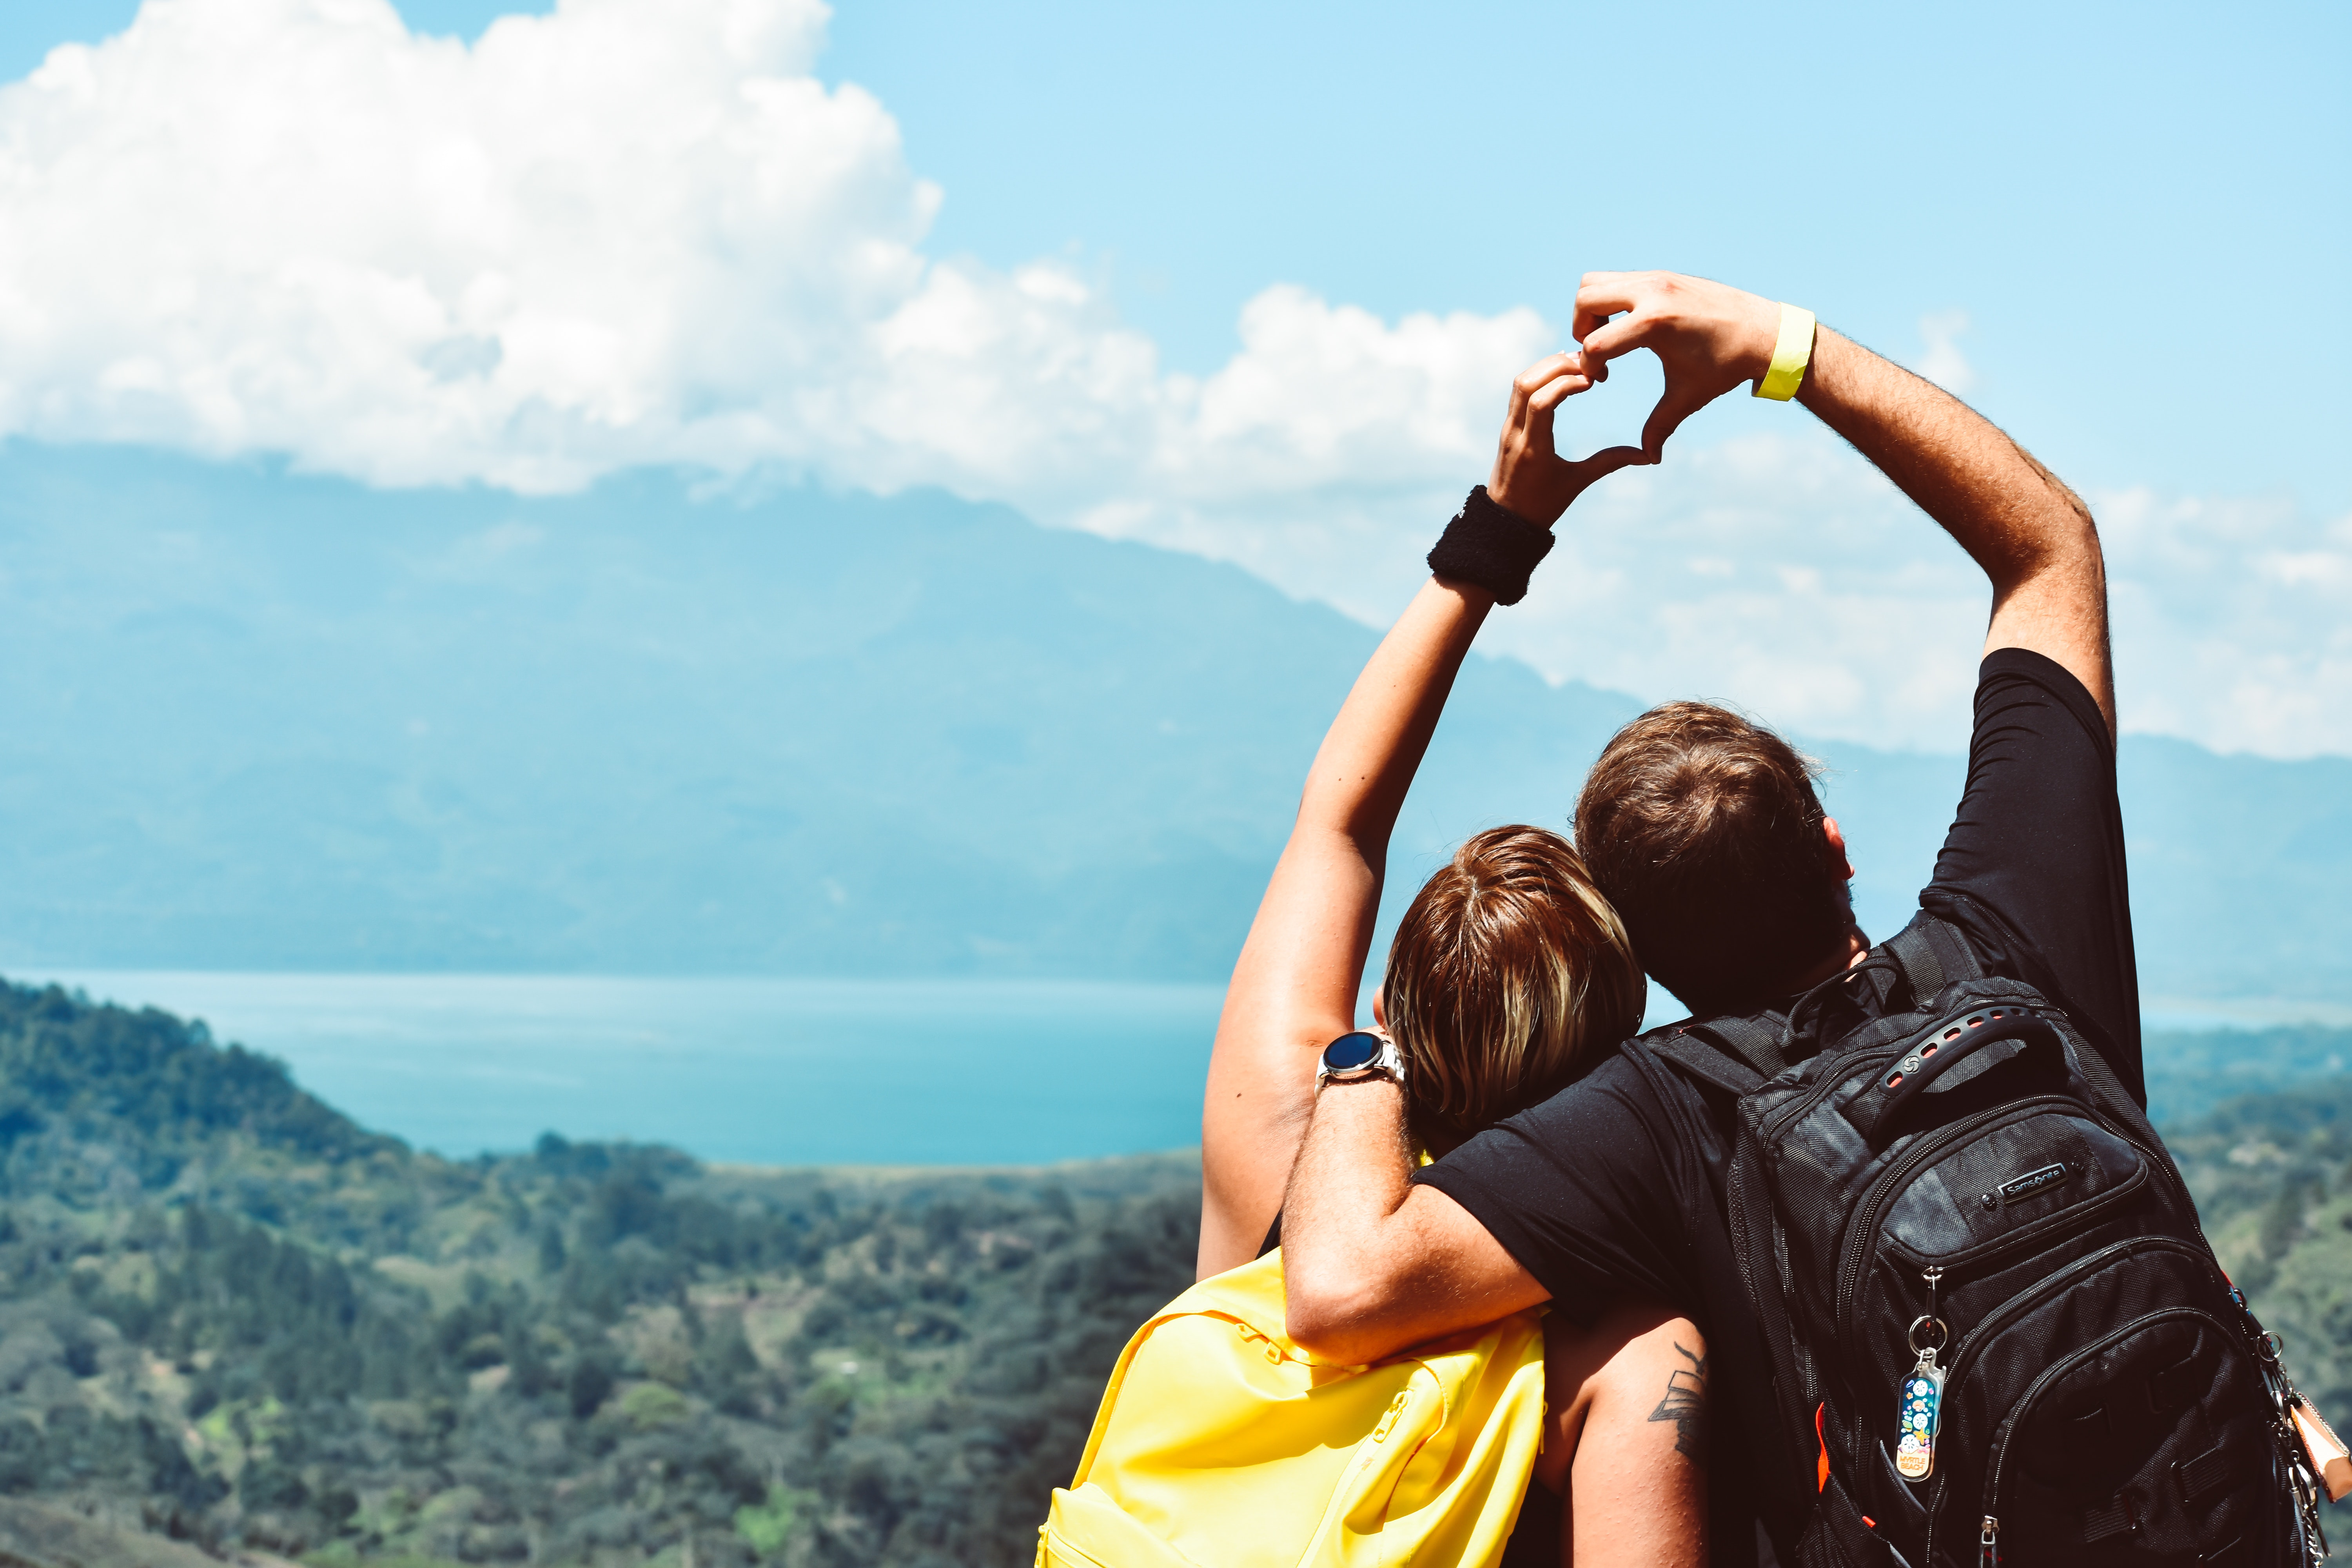 Couple making a heart with their hands on a mountain